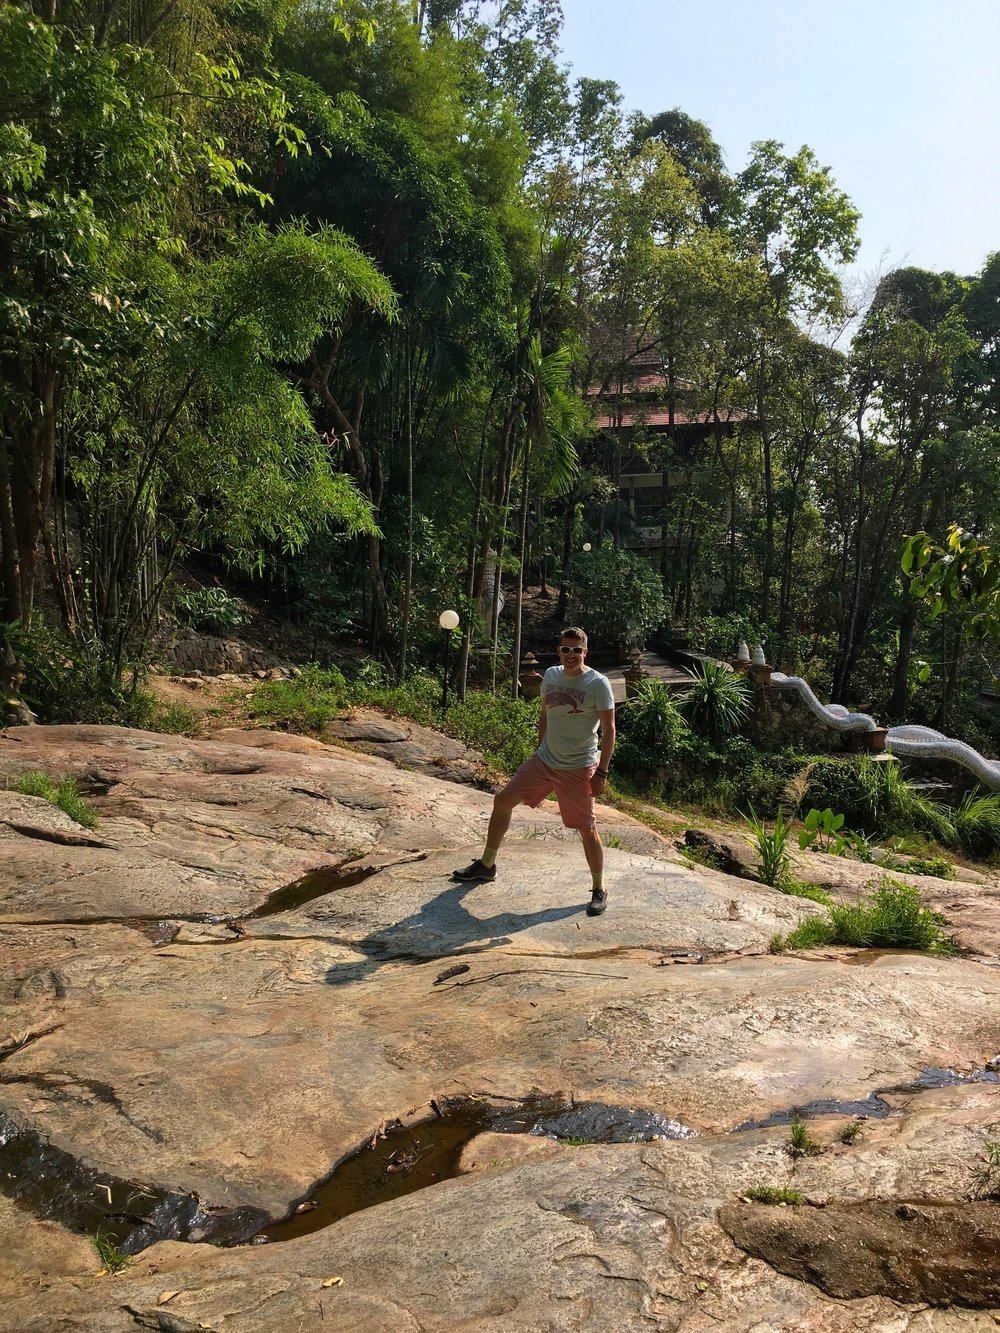 When we visited, the waterfall at Wat Palad was almost entirely dried up